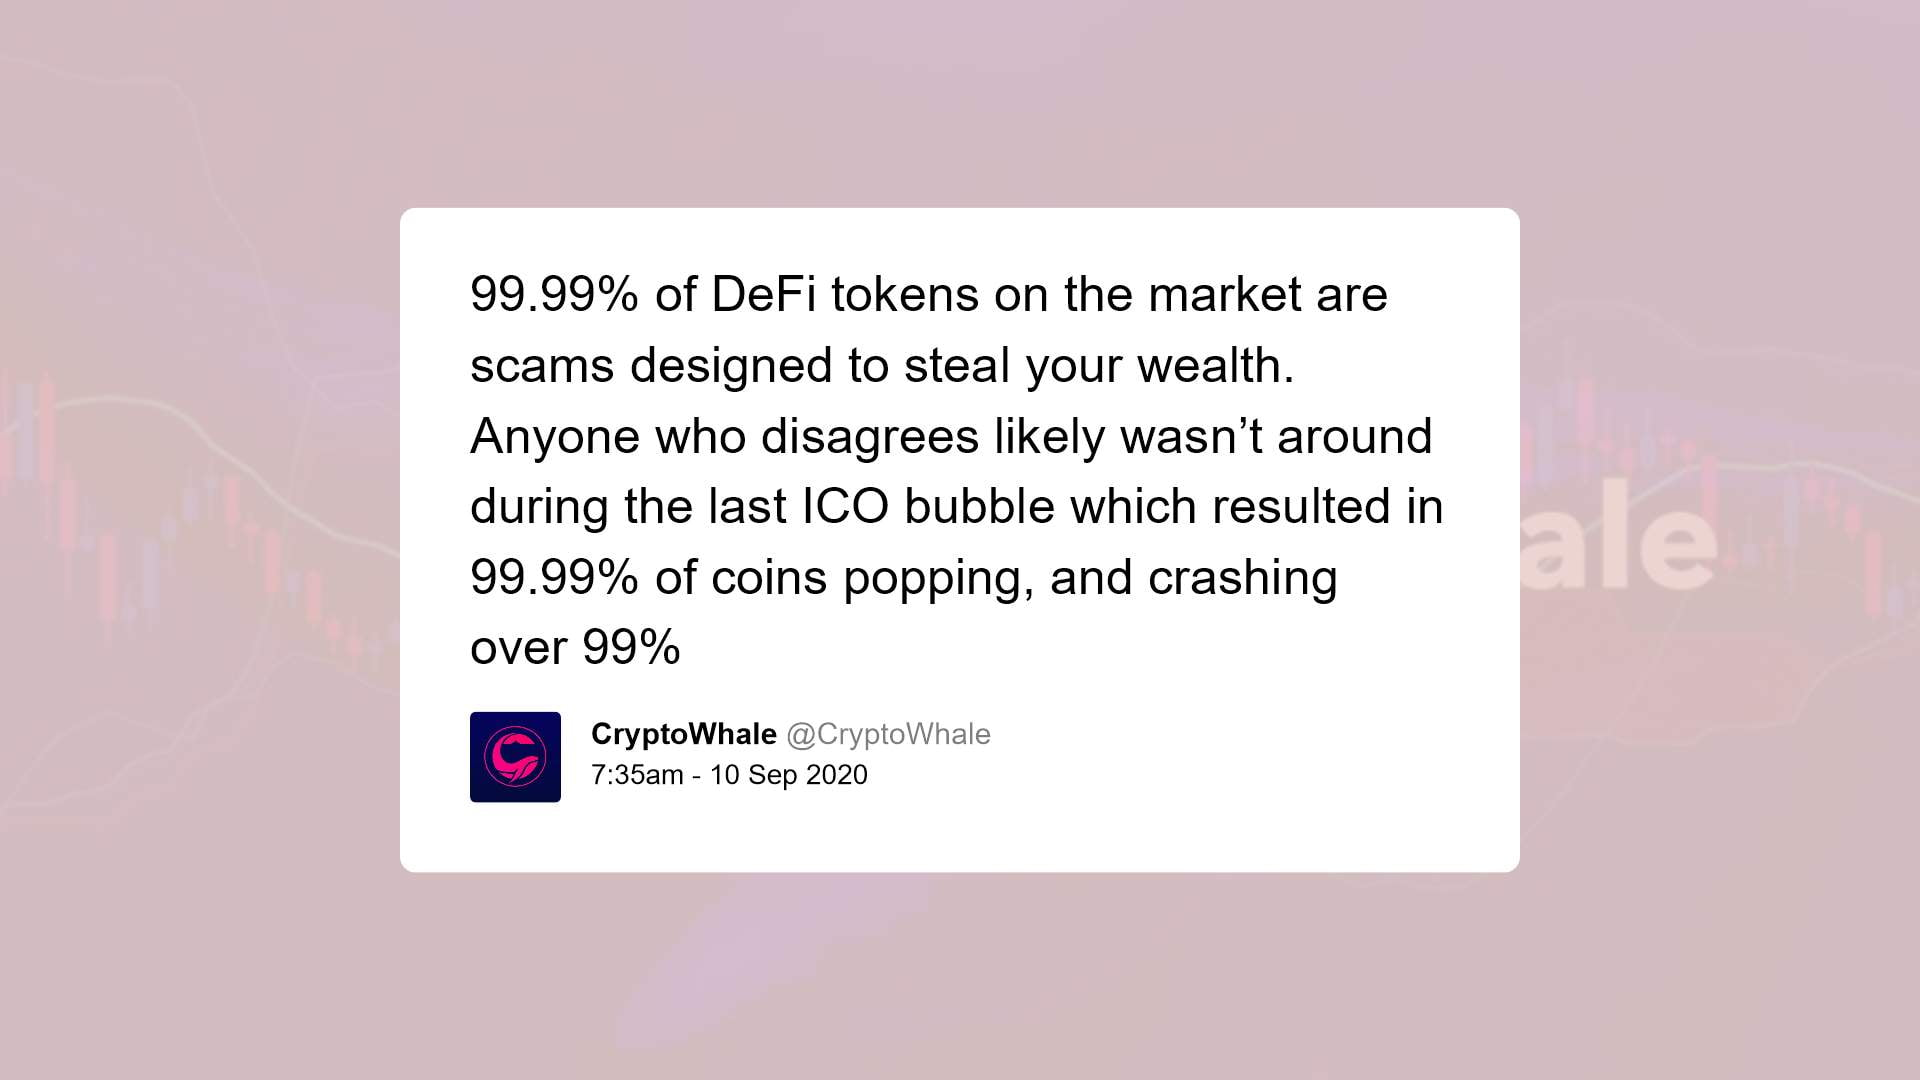 @CryptoWhale warning of DeFi scams